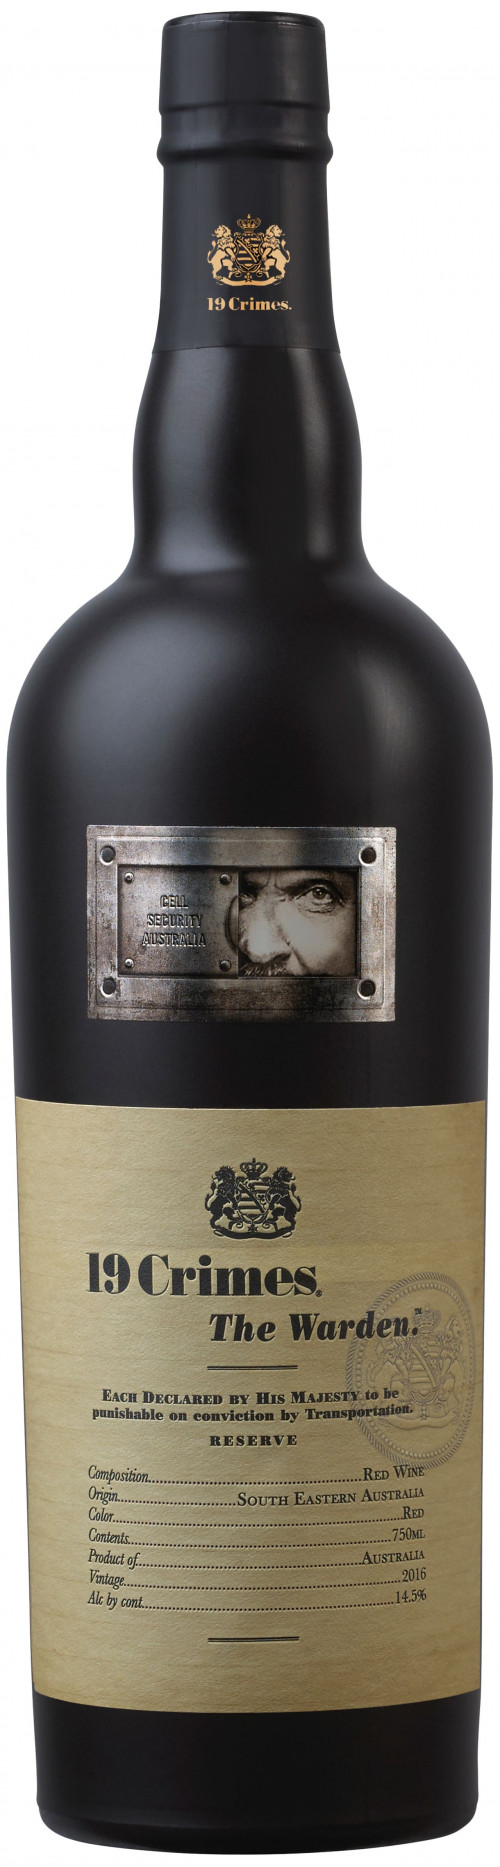 2018 19 Crimes The Warden Red 750ml